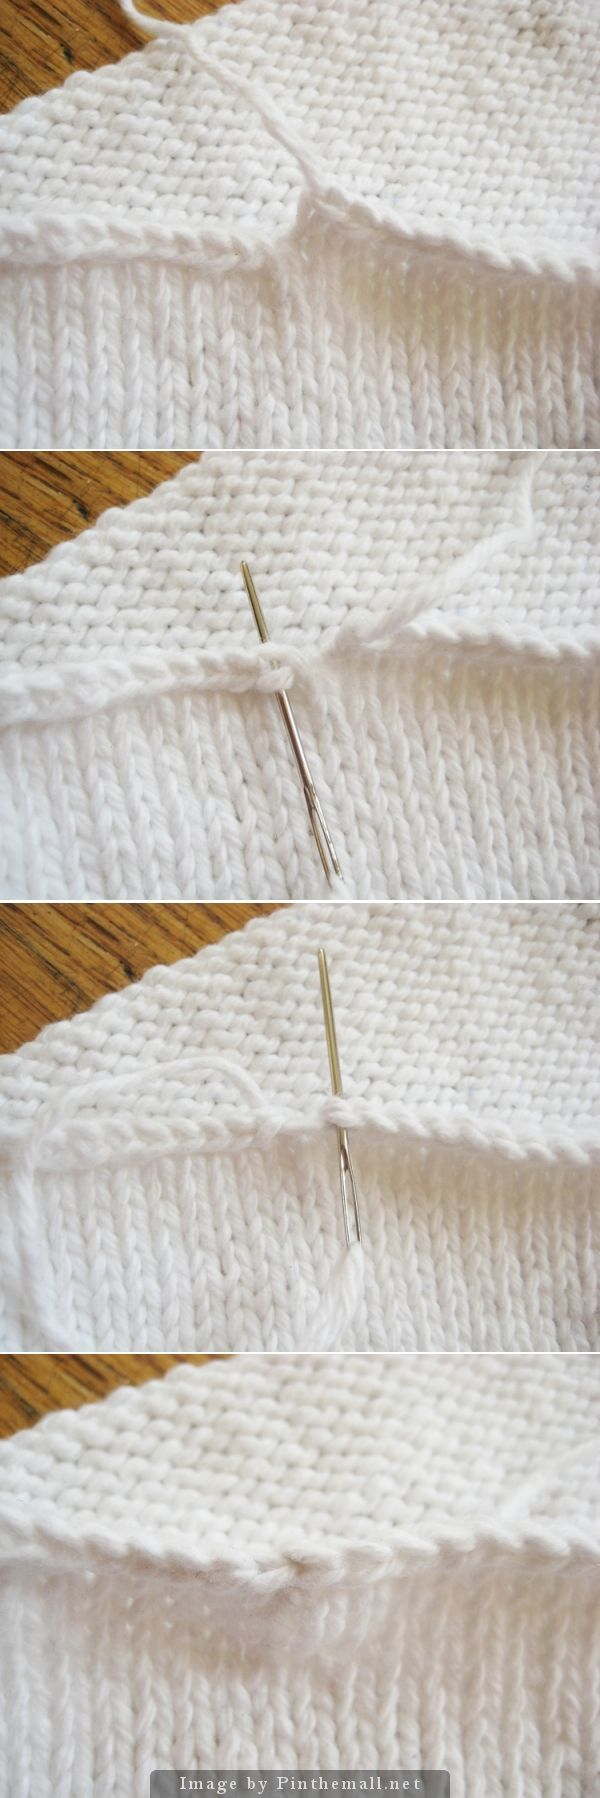 Knitting Casting Off Tutorial : Better casting off when knitting in the round a blunt